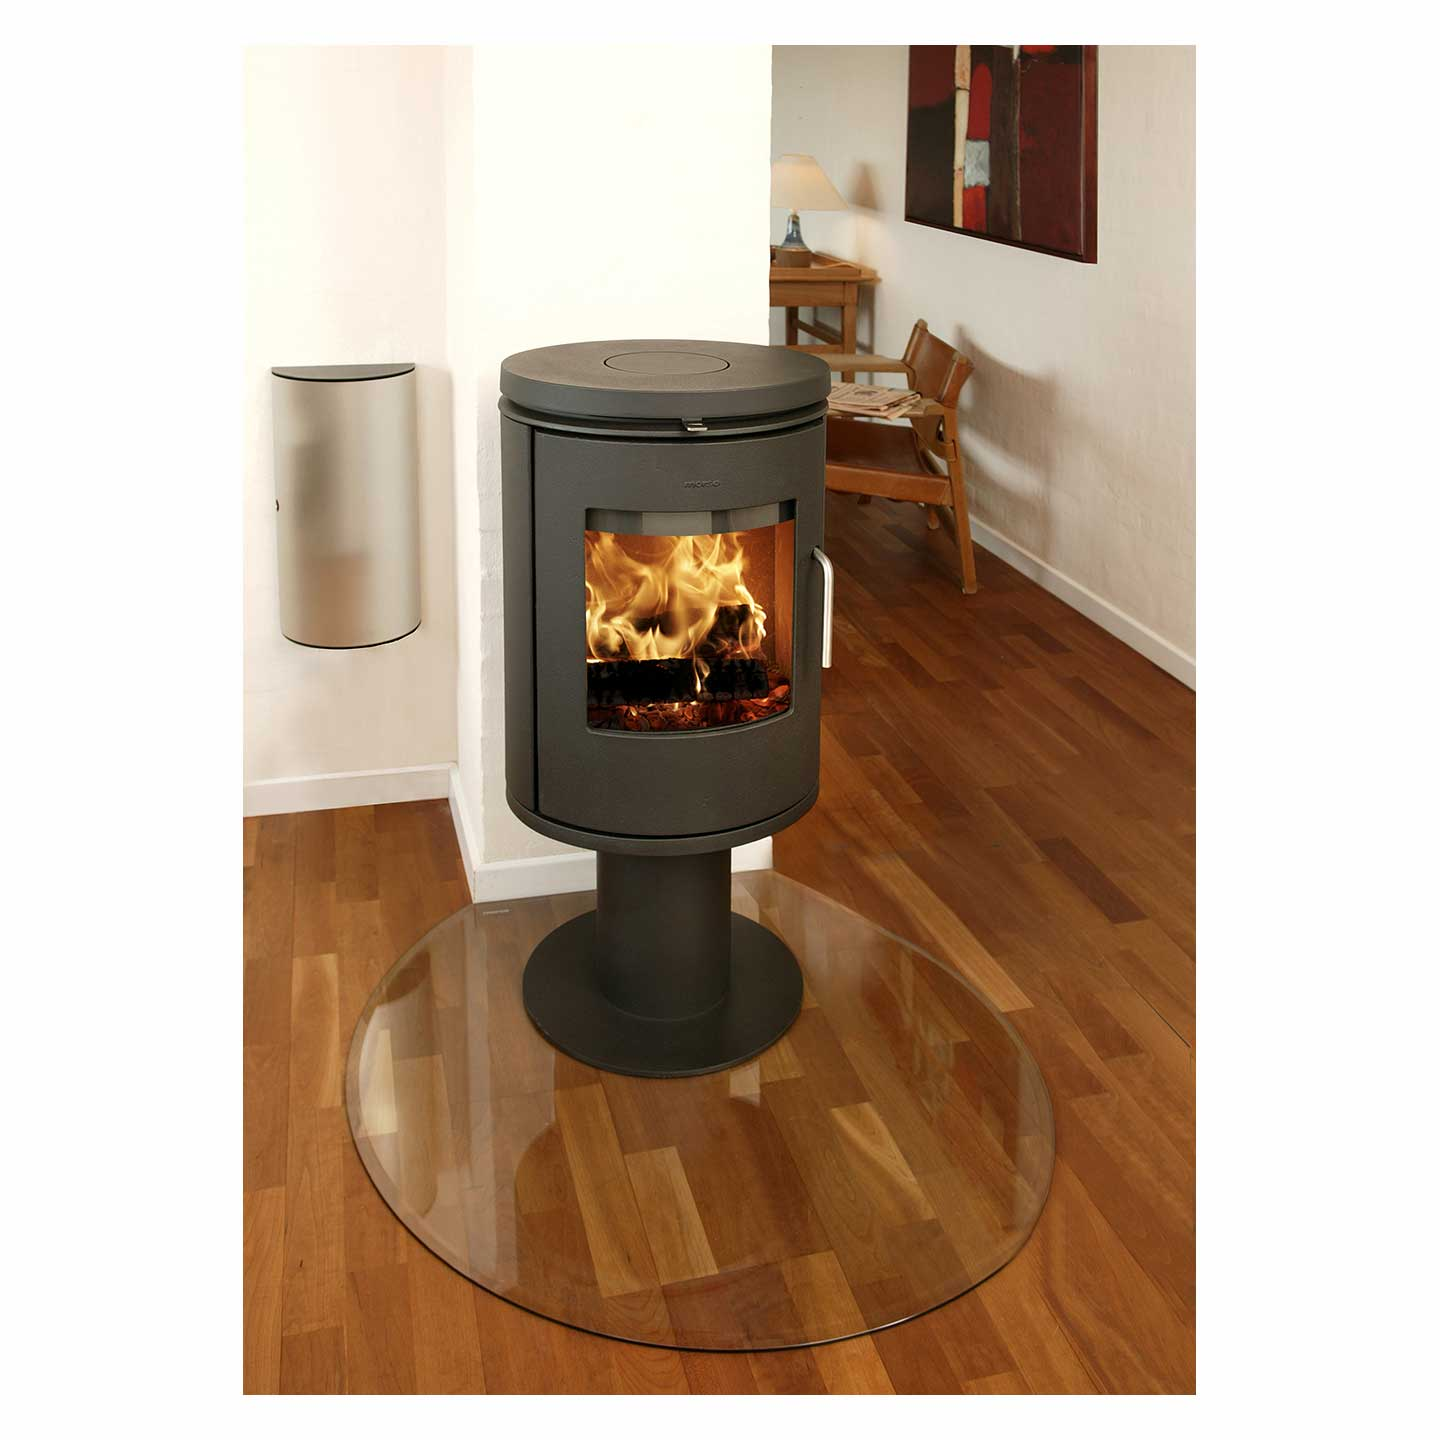 Morso 6148 Wood Burning Stove The Stove Site Approved